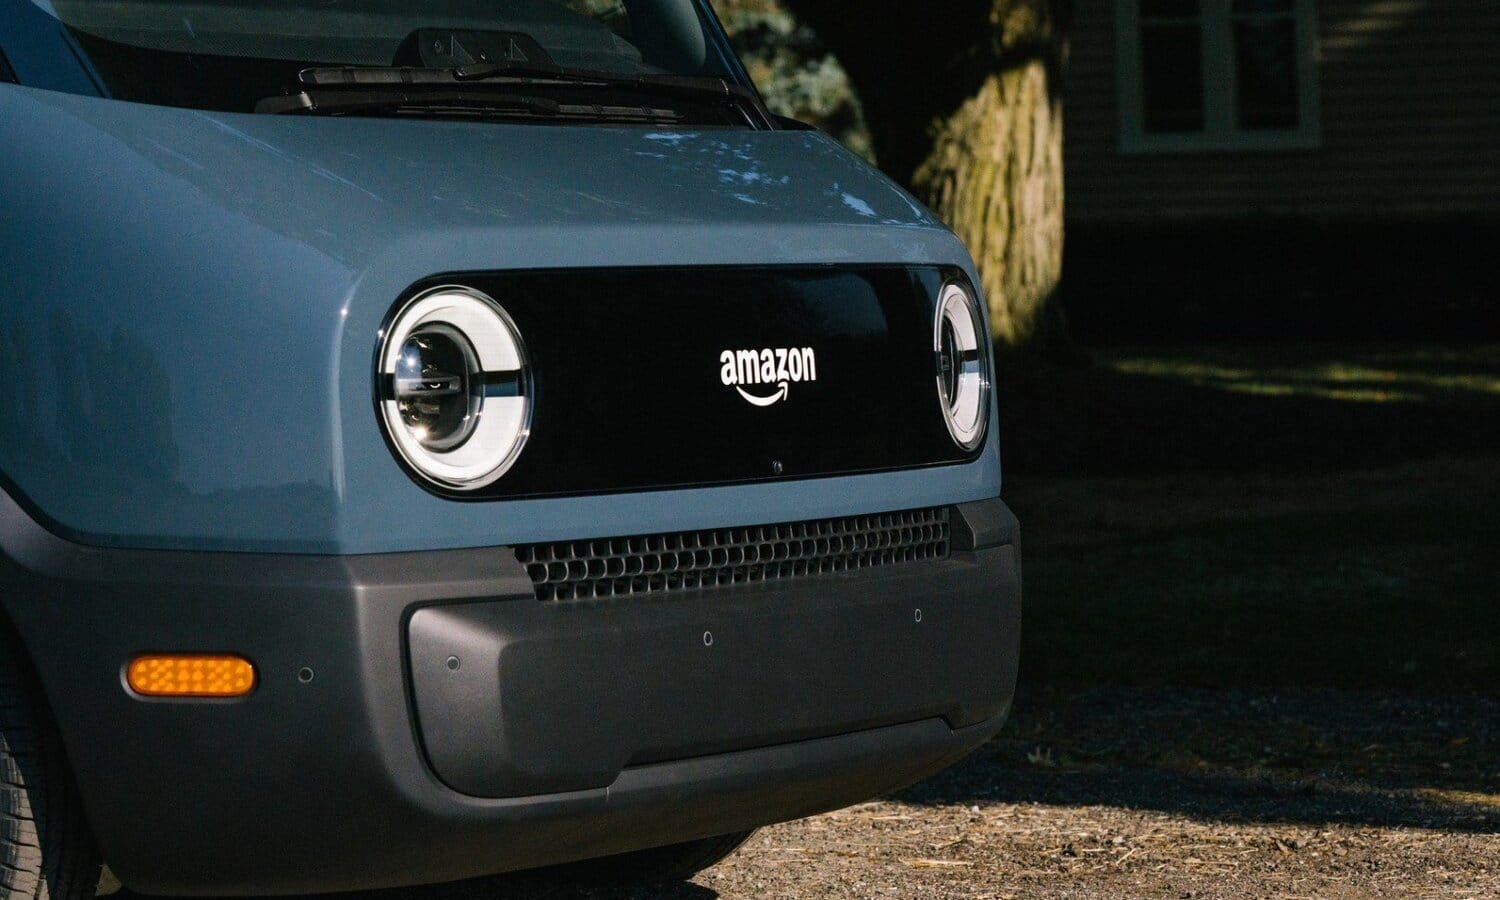 Amazon Rivian electric truck front